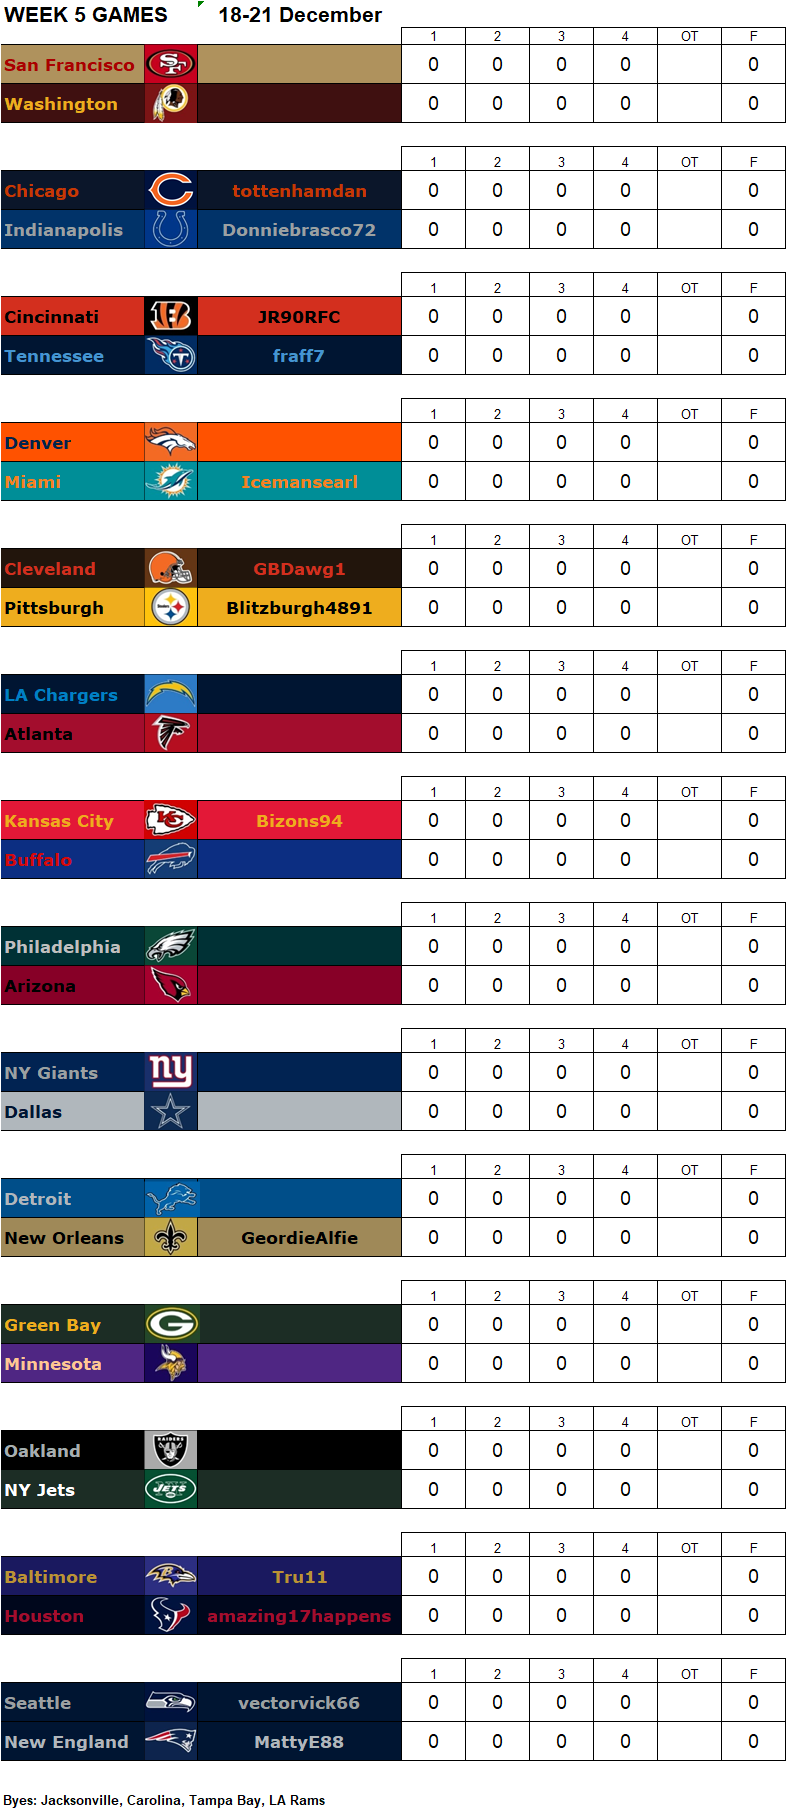 Week 5 Matchups, 18-21 December W5g20